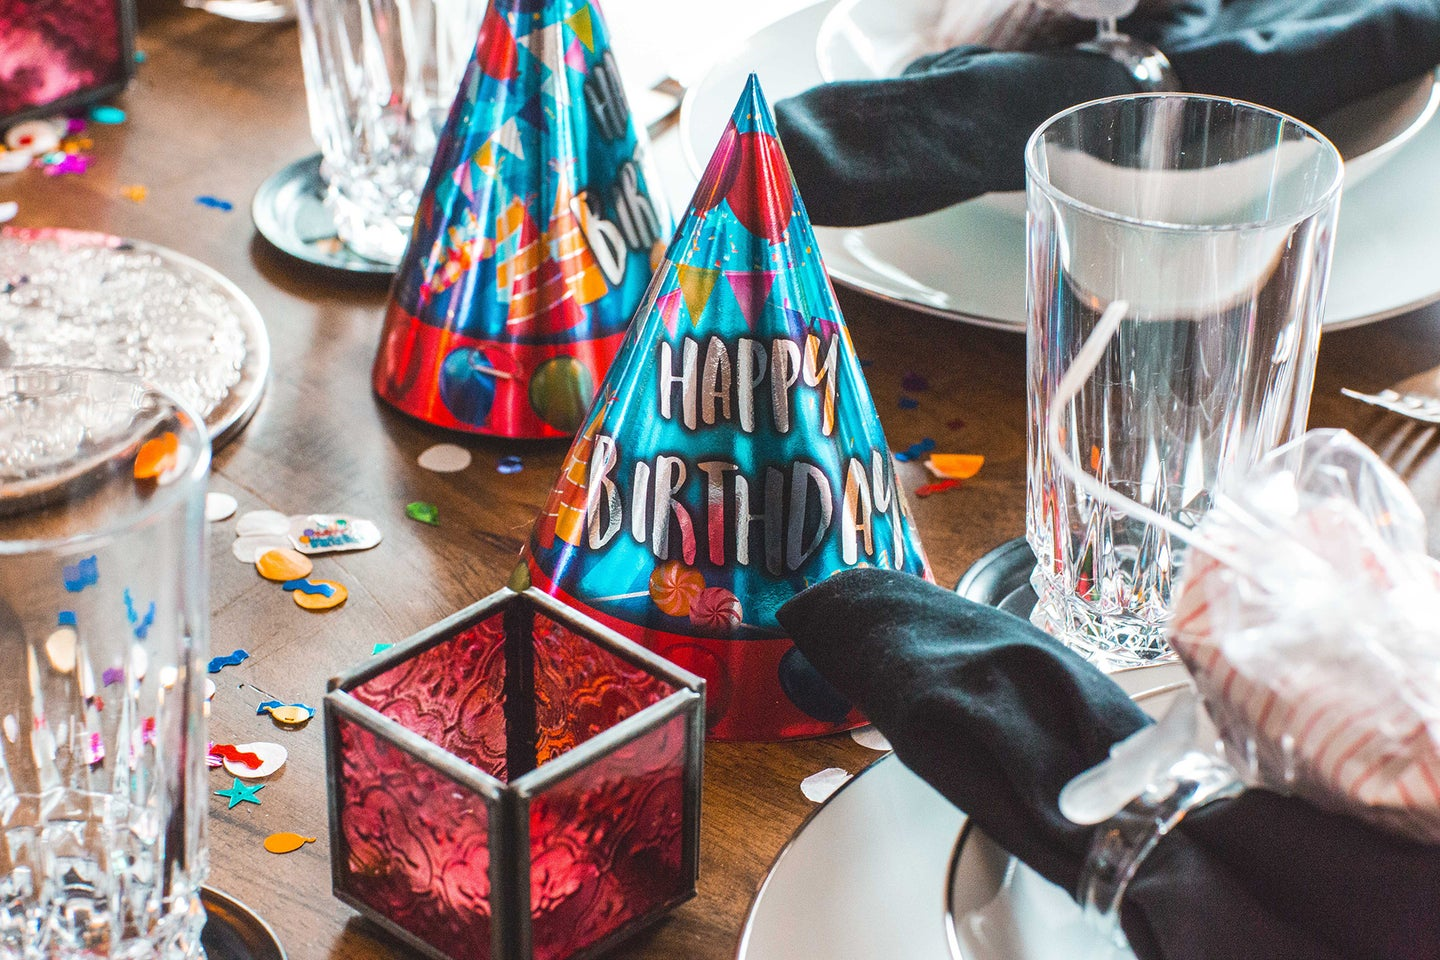 table with birthday hats and other festive items